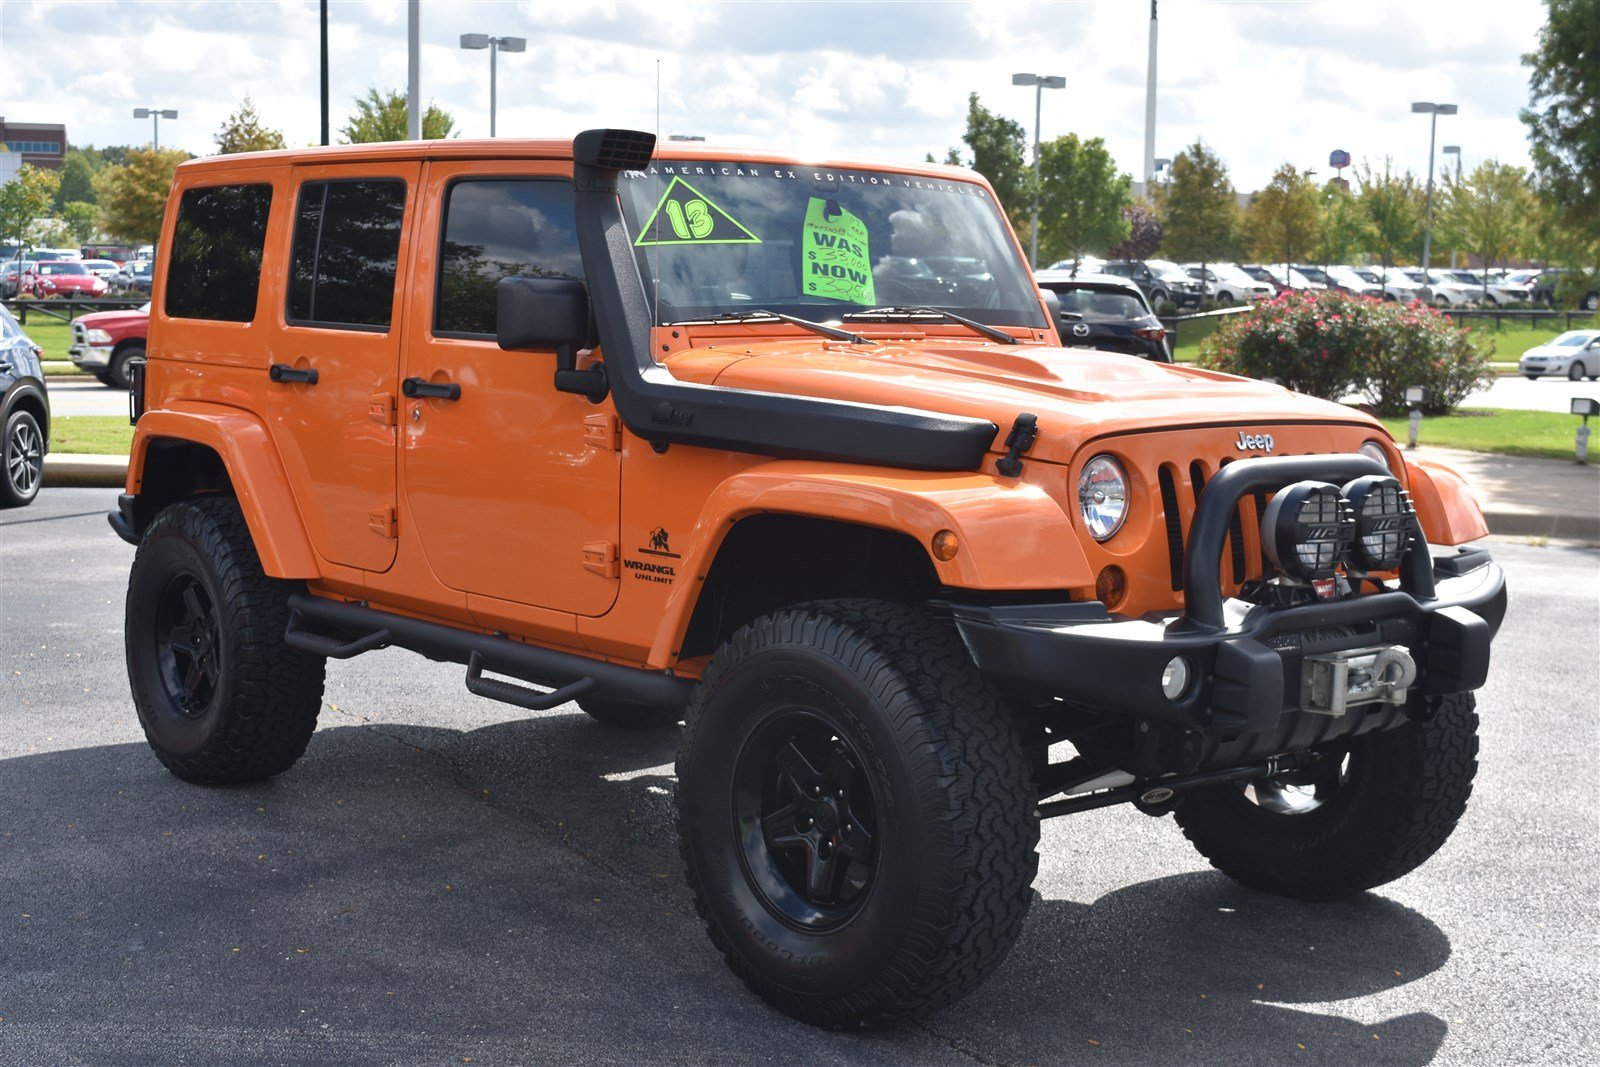 Pre Owned 2013 Jeep Wrangler Unlimited Rubicon 4WD